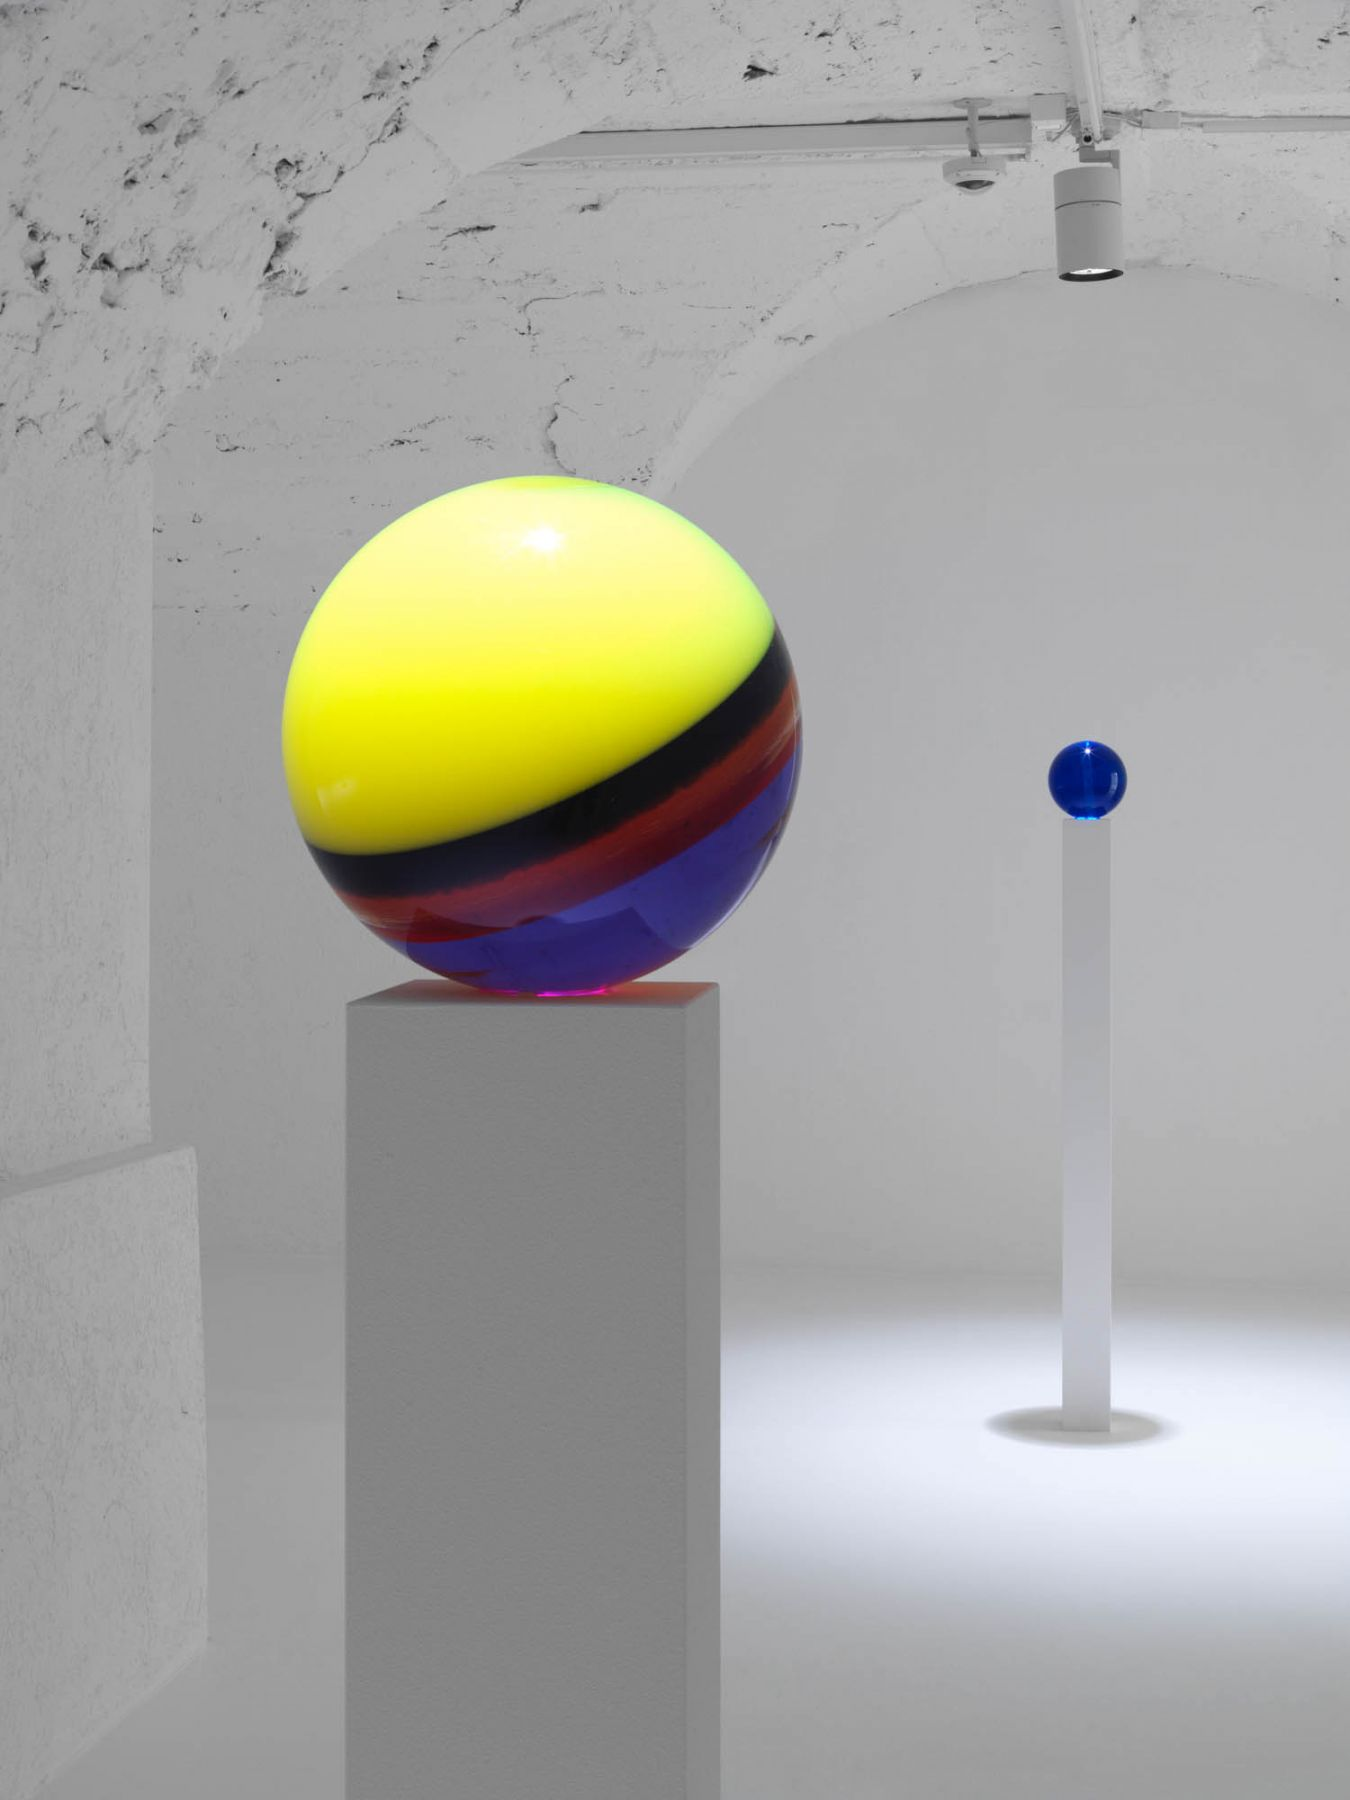 Installation view: Helen Pashgian, New Lenses and Spheres